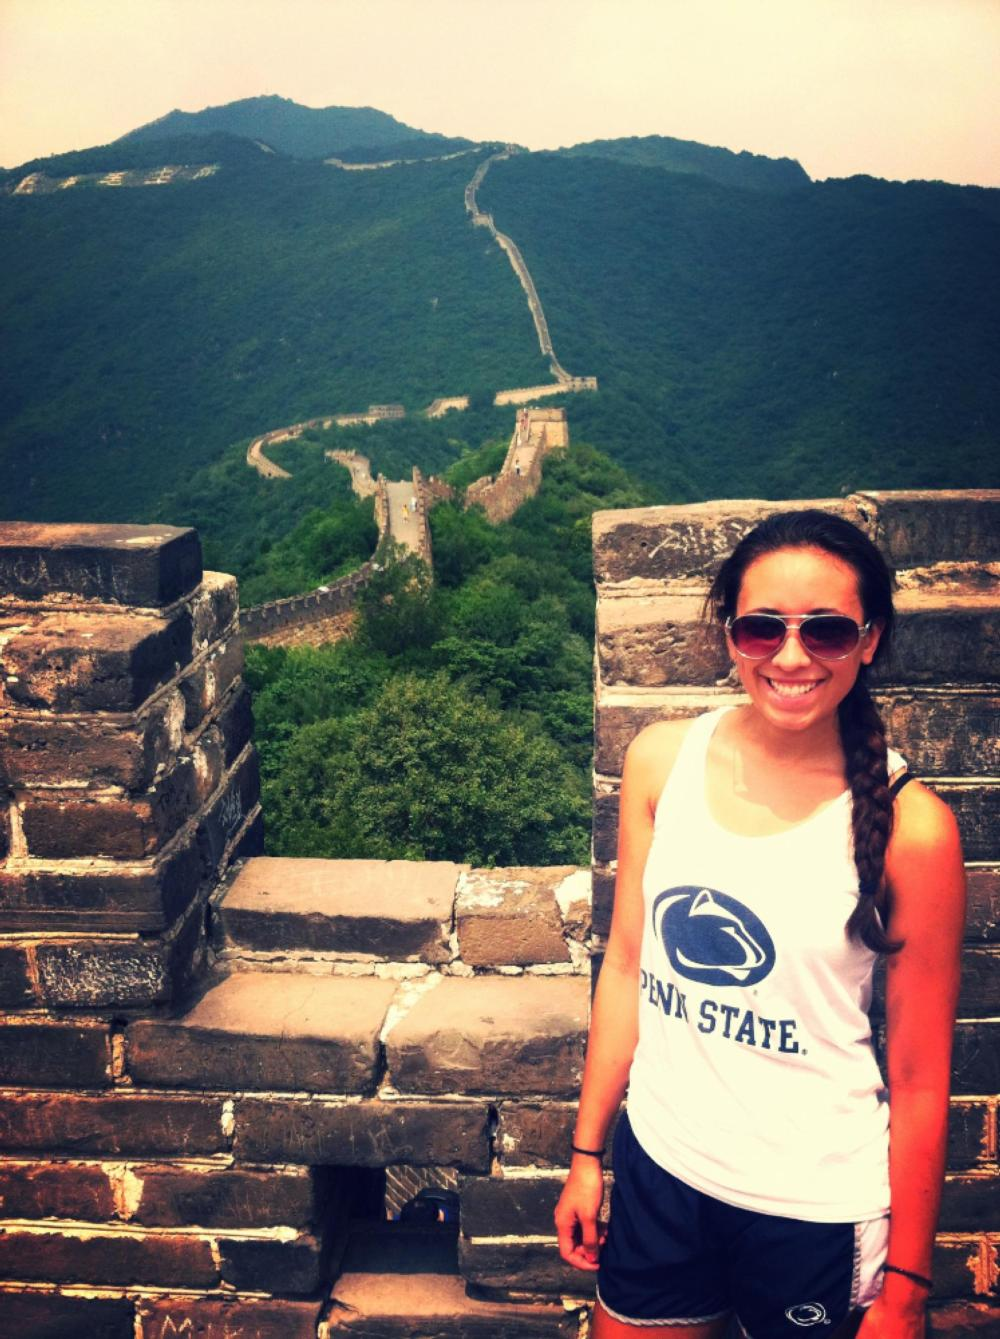 Penn State student at Great Wall